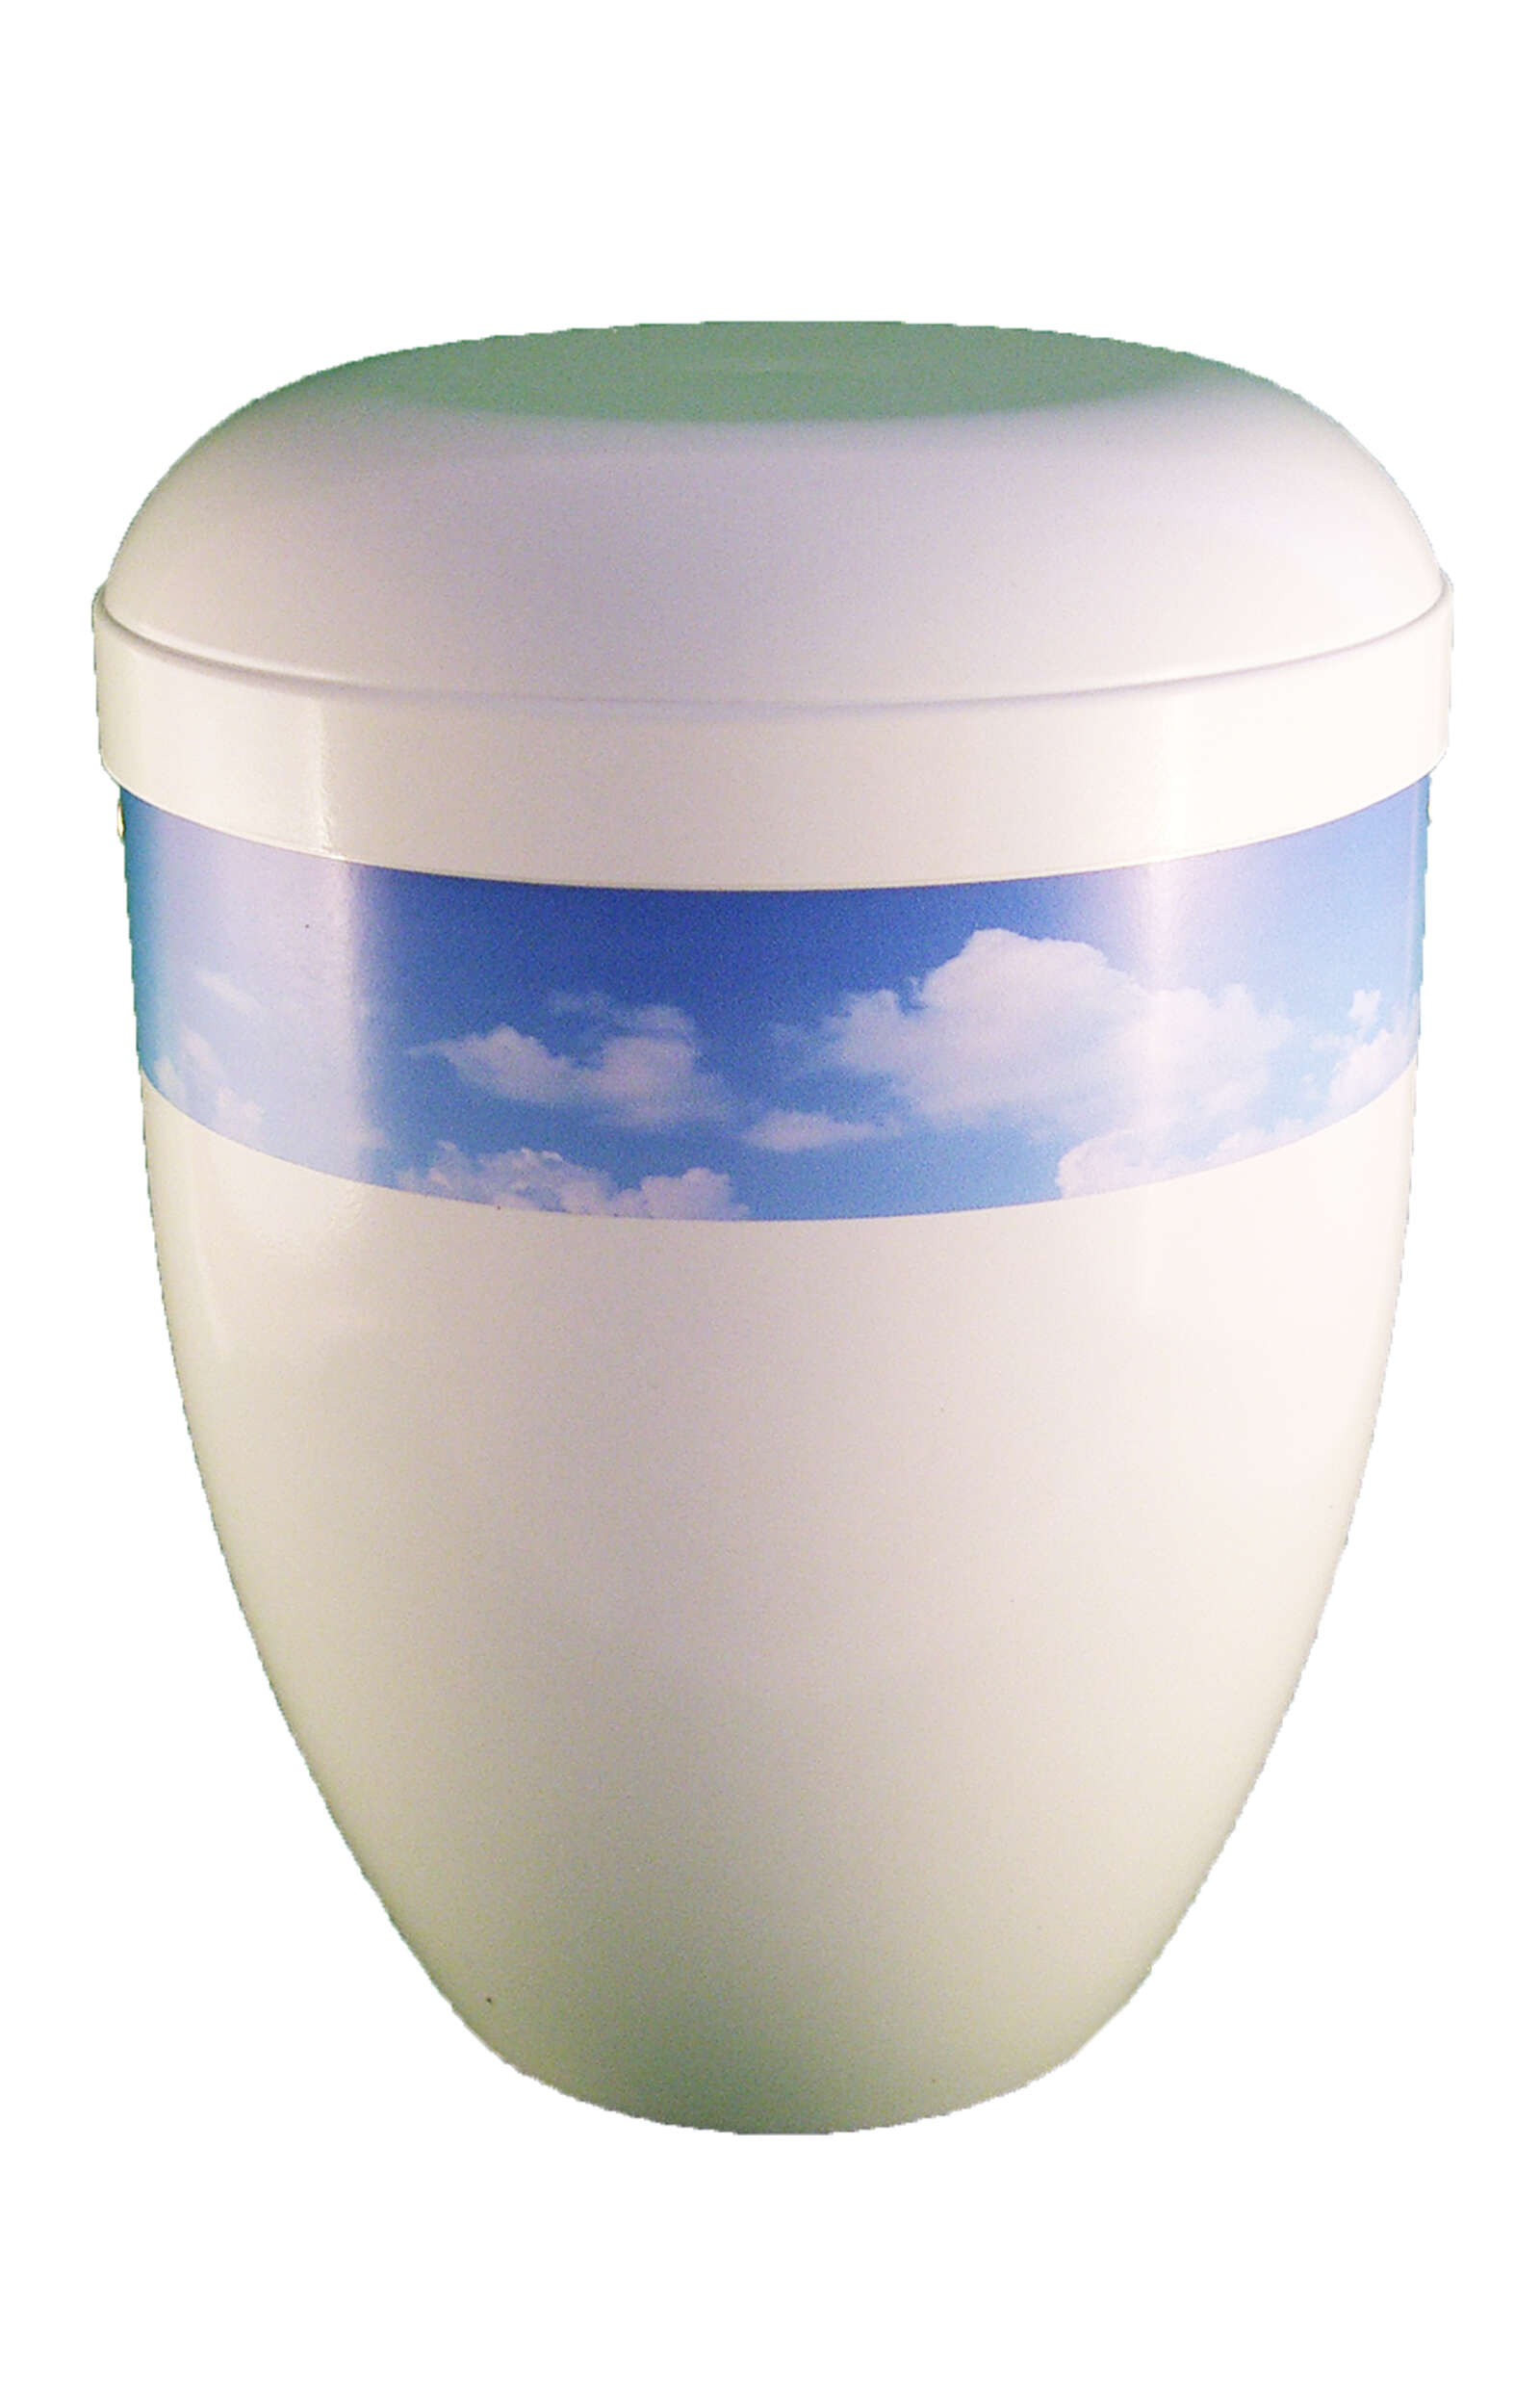 en BWG3713 funeral urn for human ashes sky clouds